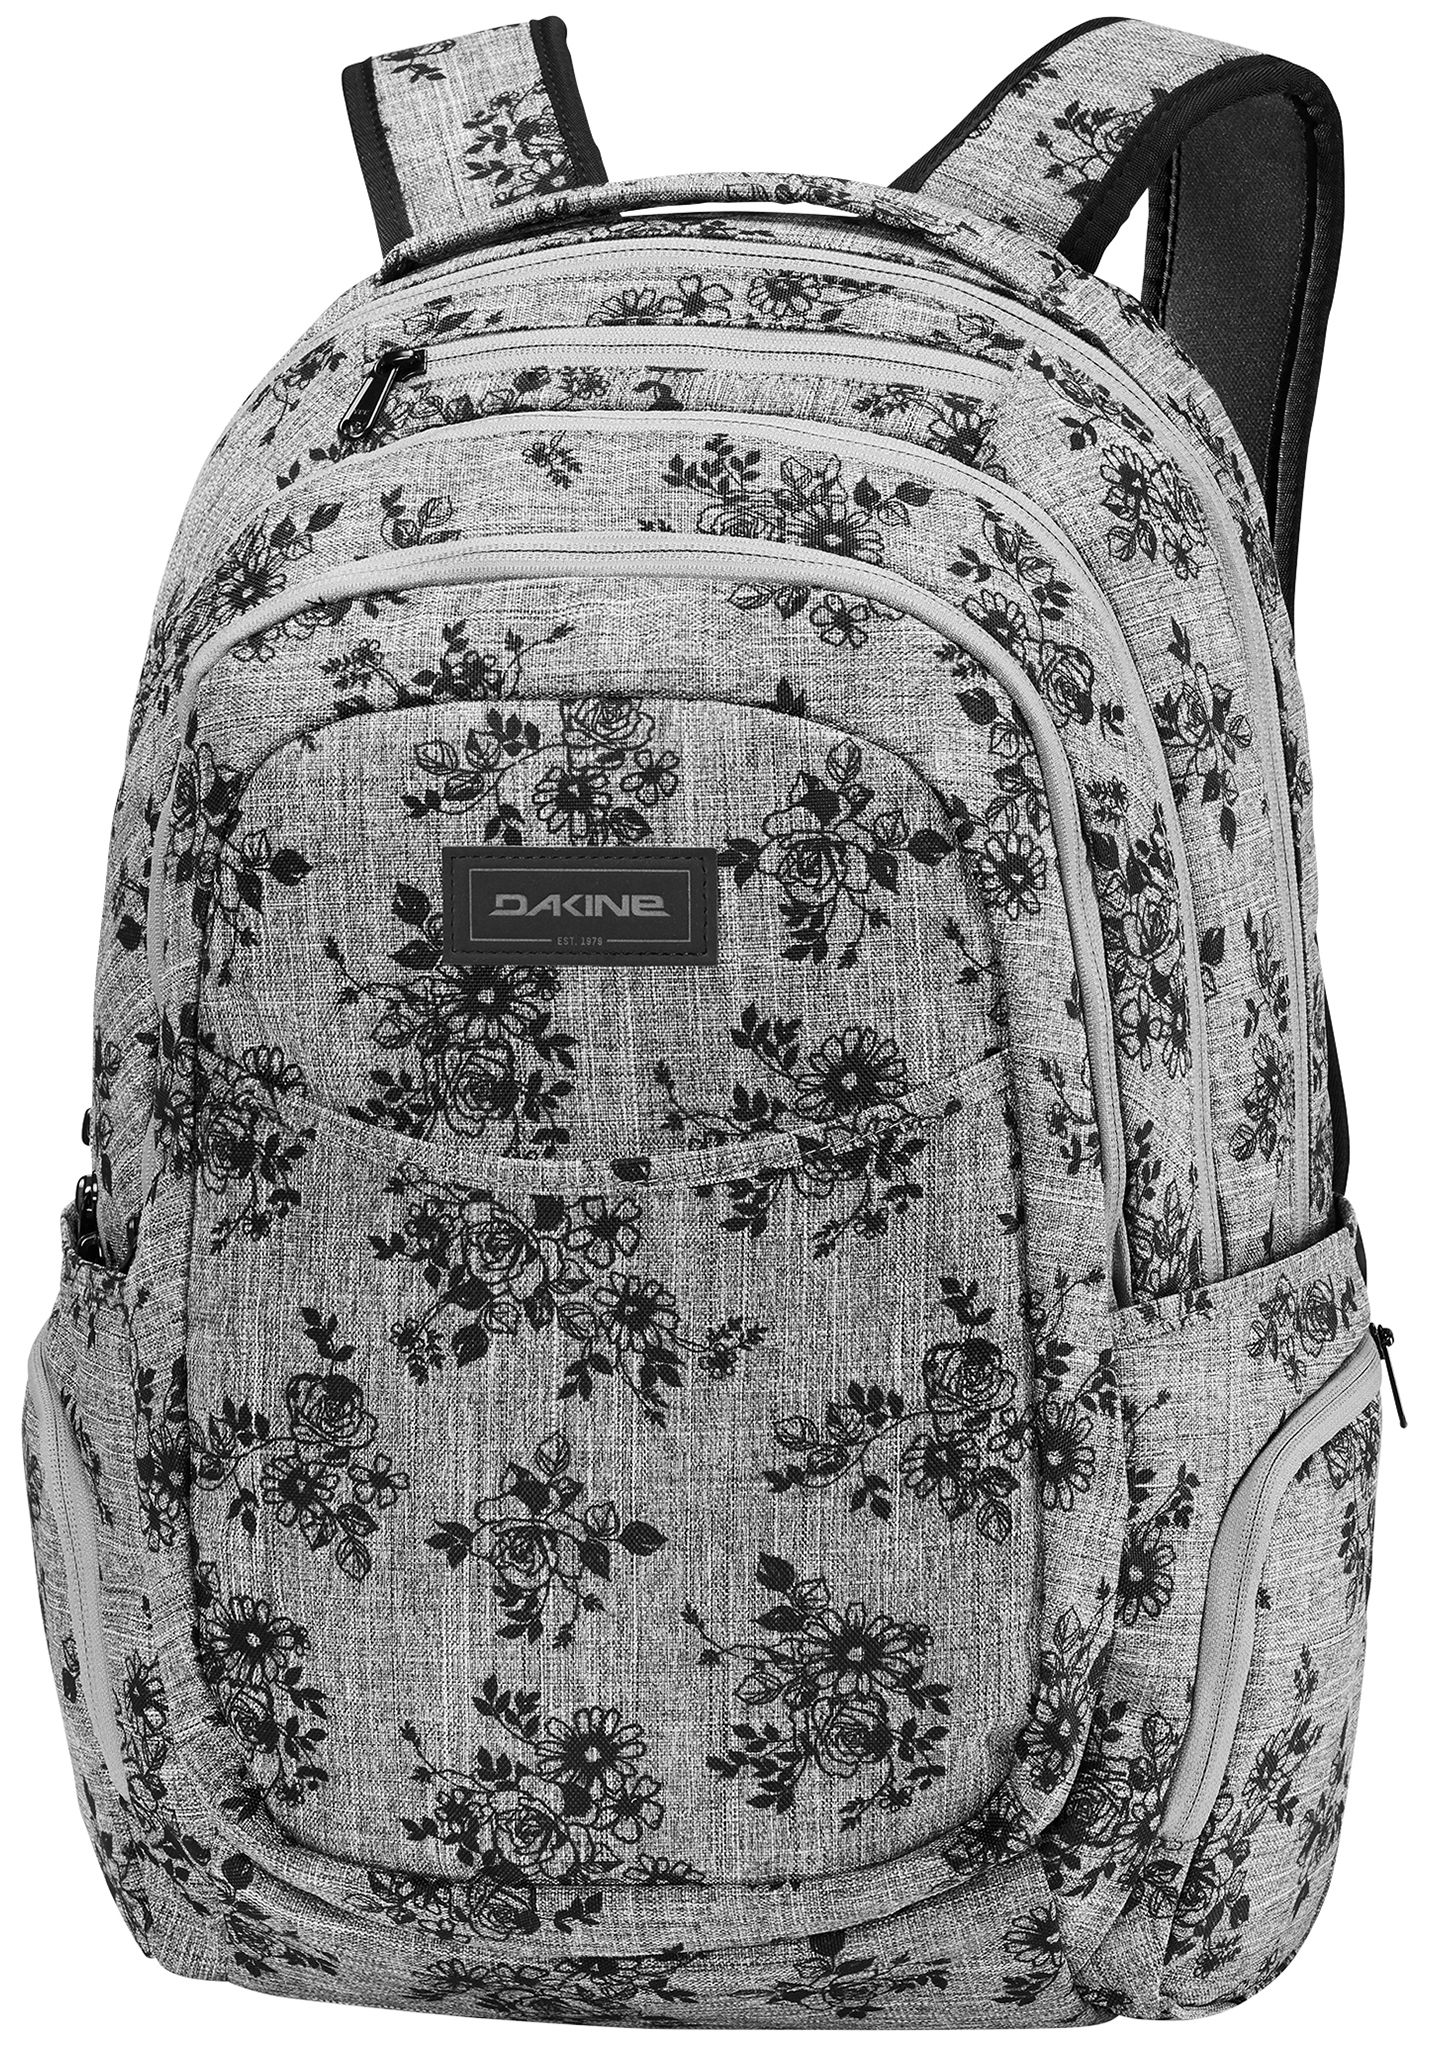 fd87738f5dde0 Dakine Prom Sr 27l Laptop Backpack